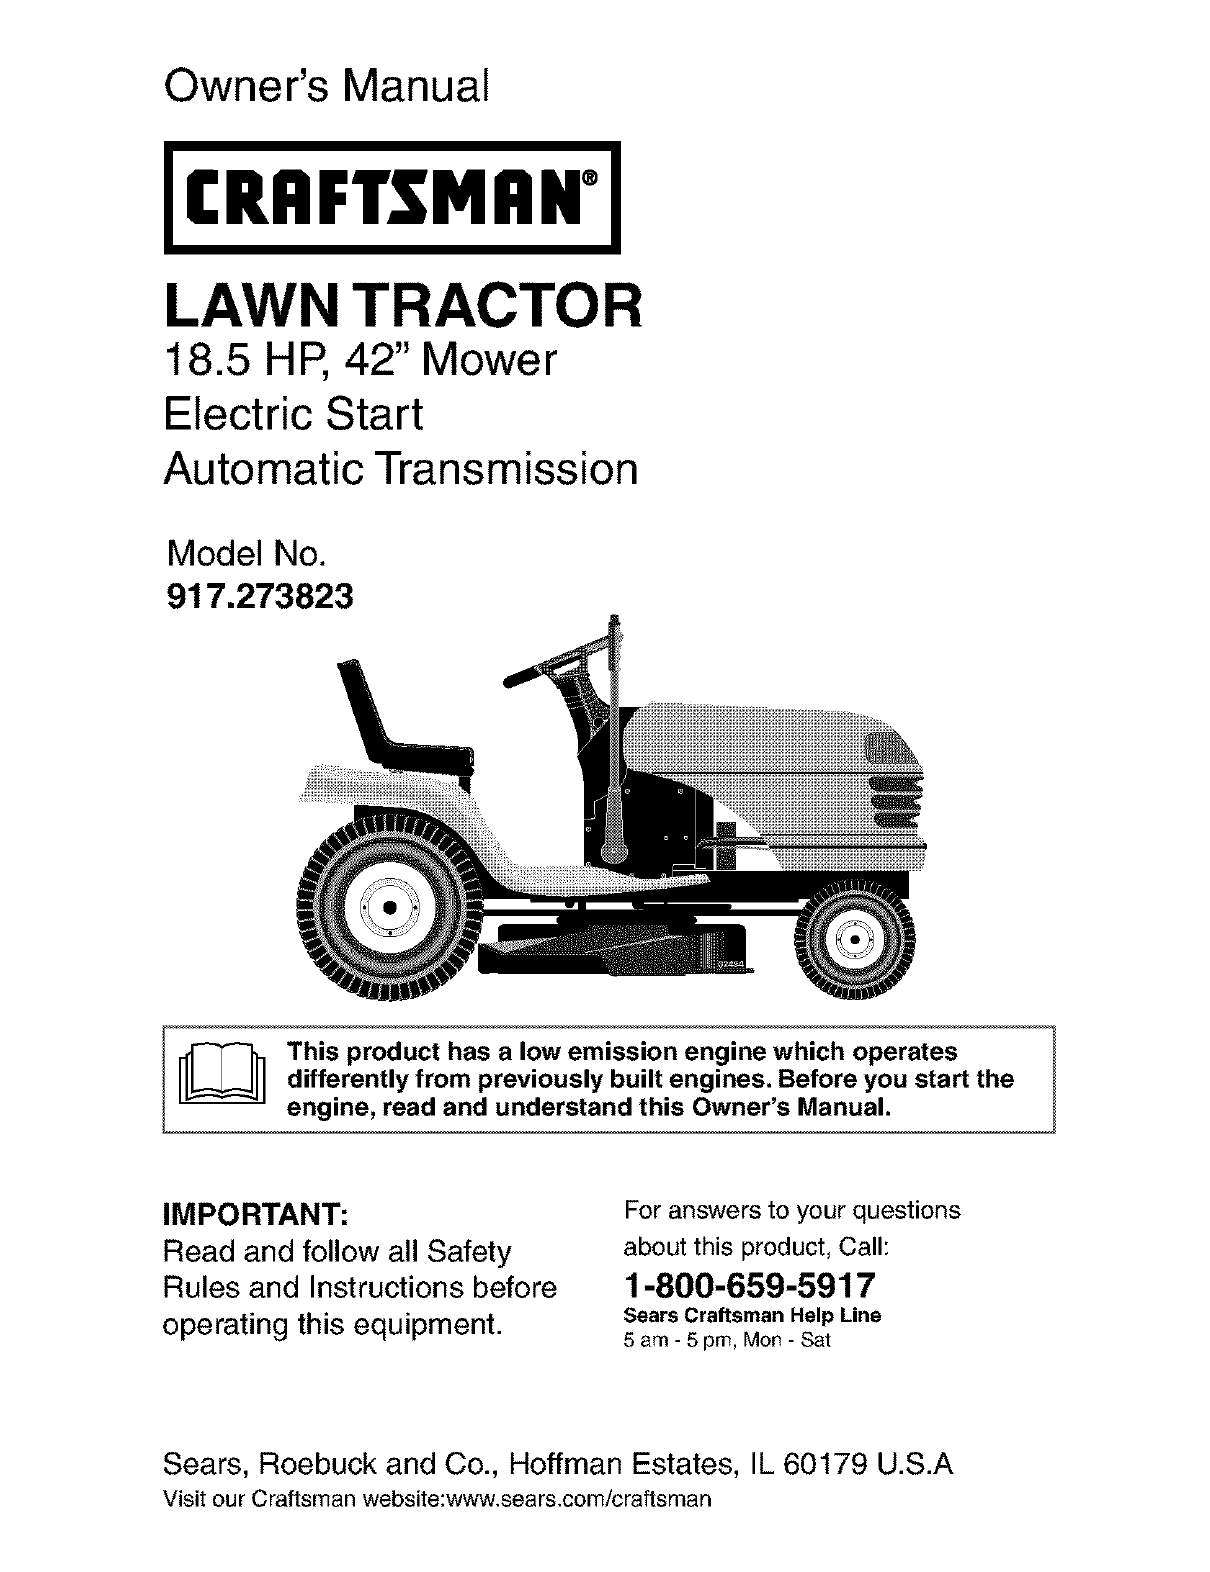 craftsman lawn mower 917 273823 user guide manualsonline com rh phone manualsonline com Sears Craftsman ManualsOnline Craftsman LT 2000 Manual PDF